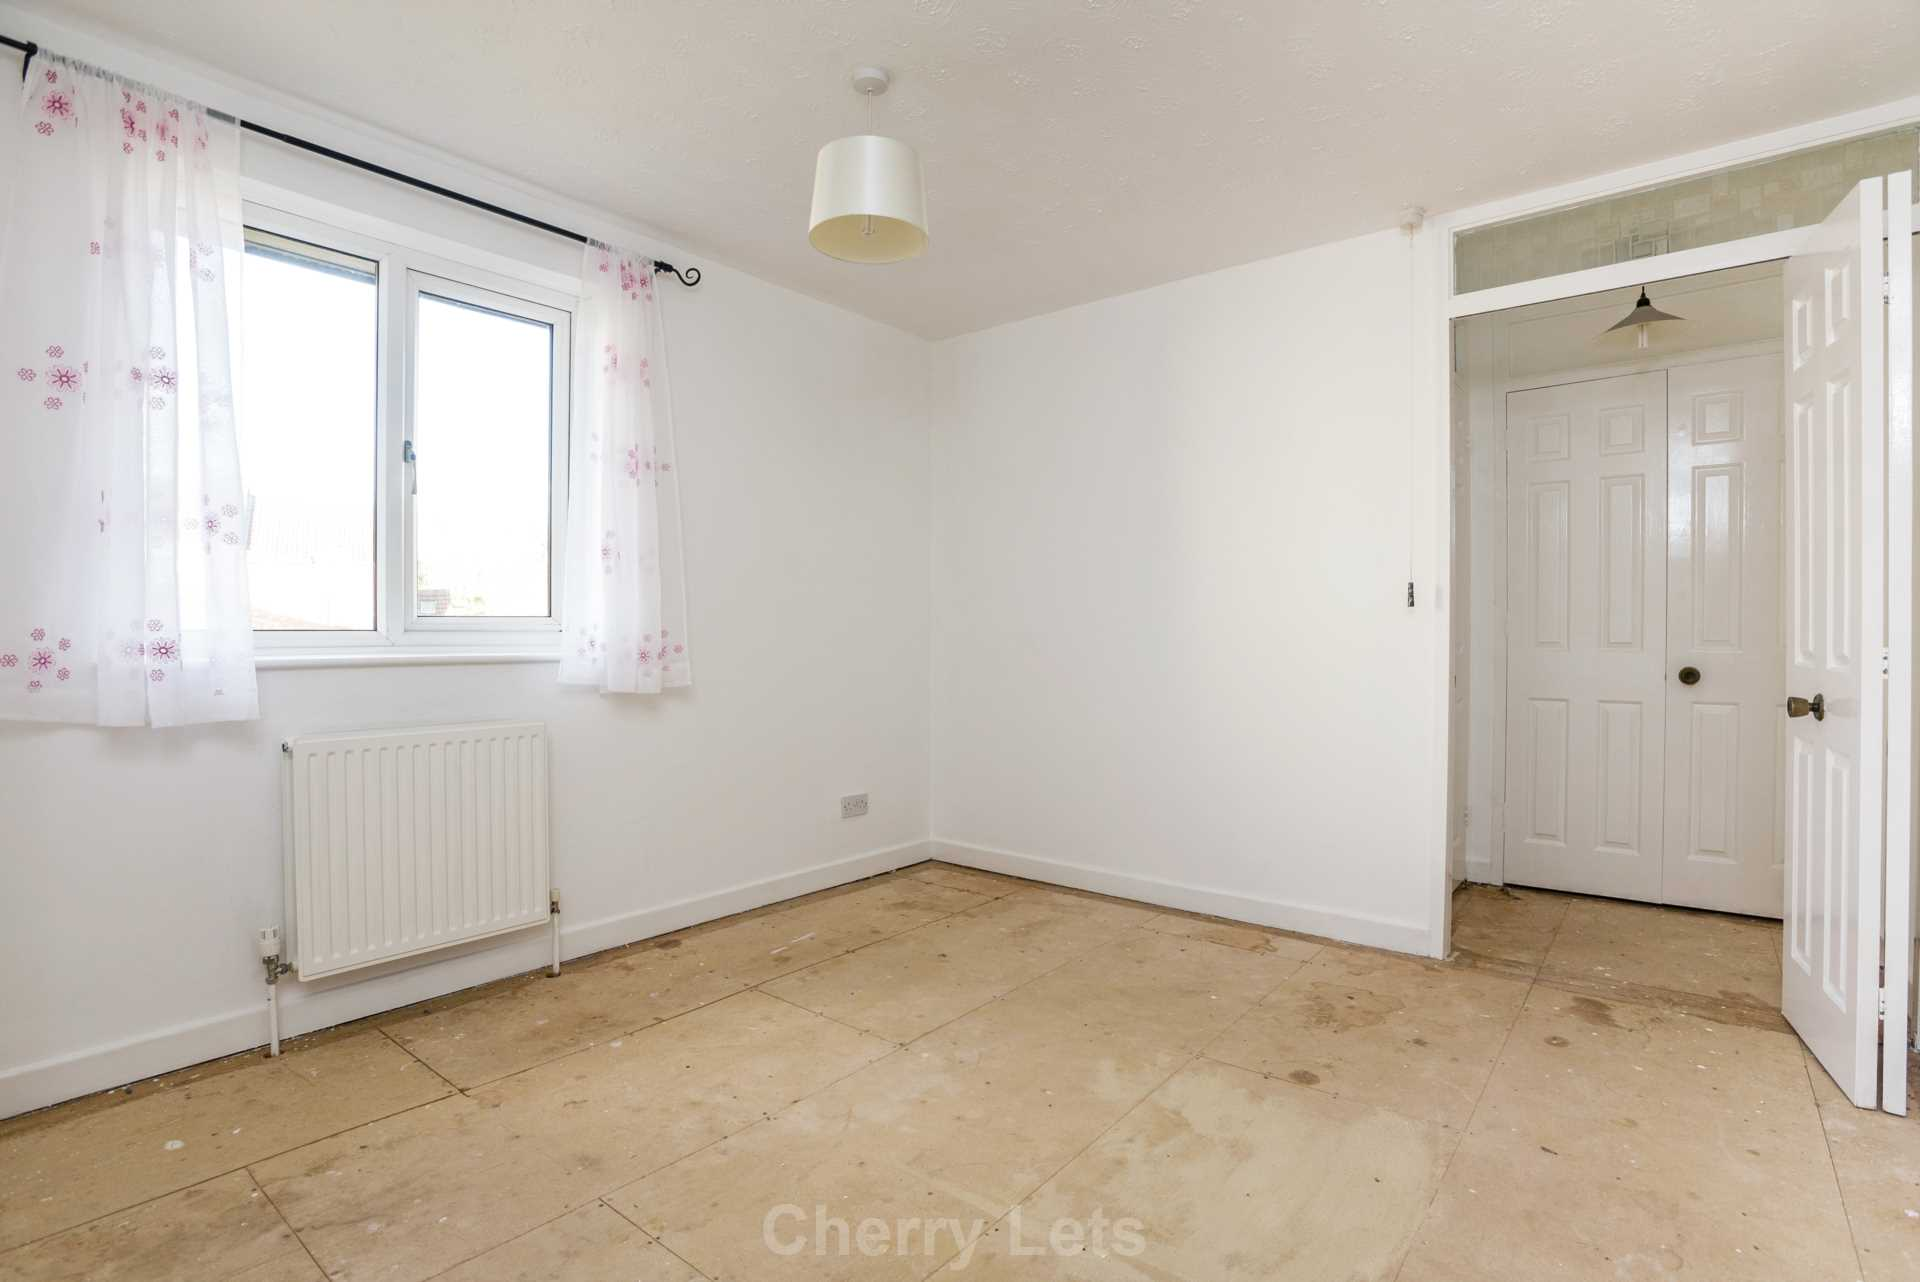 1 bed end of terrace house to rent in Bedford Close, Banbury, OX16 6